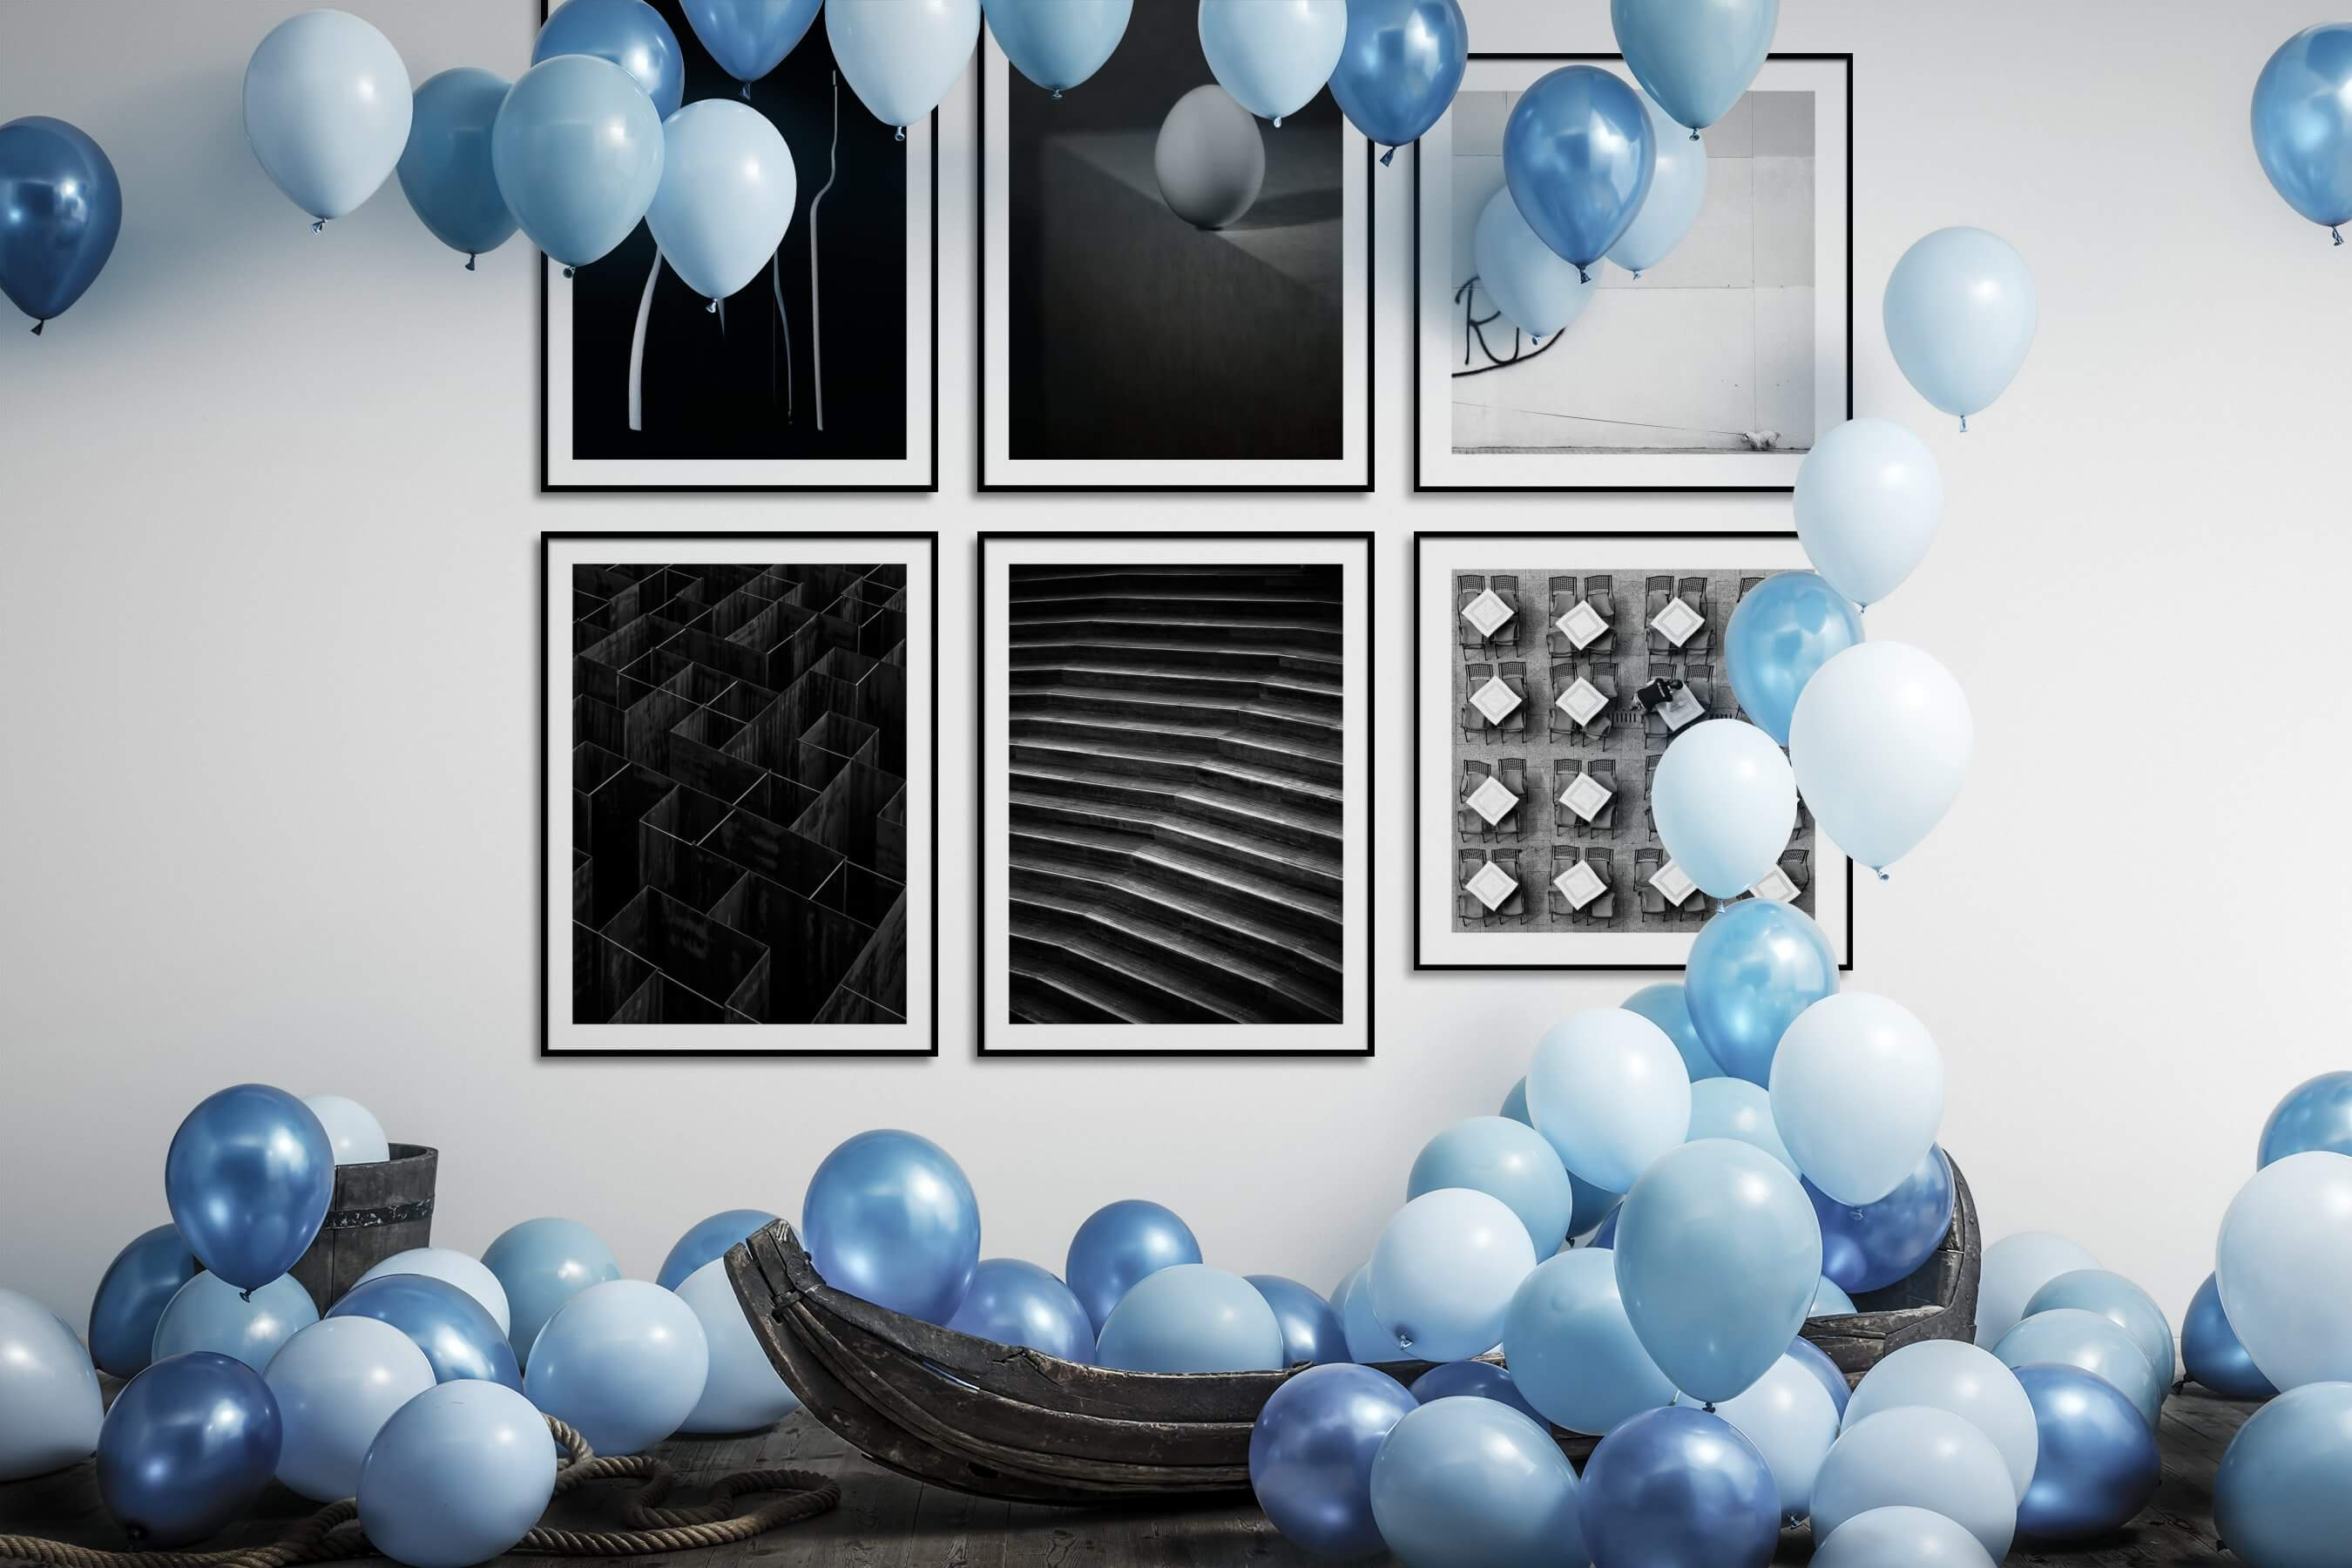 Gallery wall idea with six framed pictures arranged on a wall depicting Dark Tones, For the Minimalist, Black & White, For the Maximalist, For the Moderate, Animals, and City Life